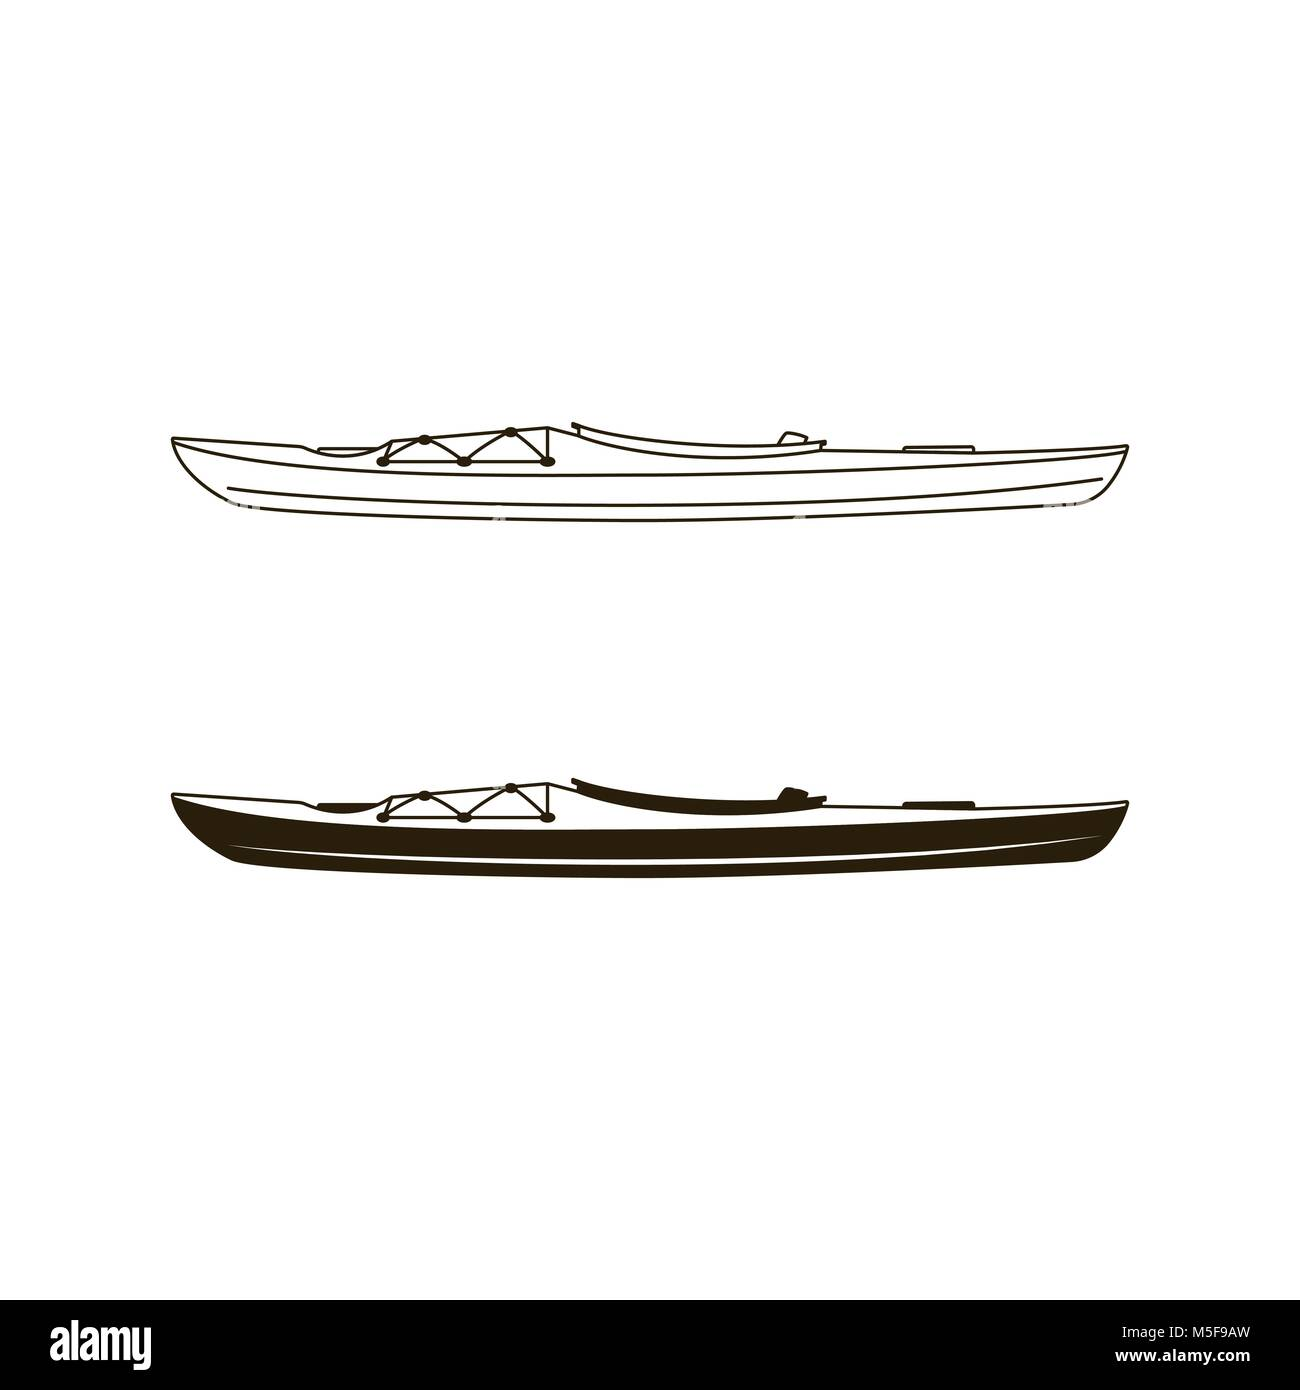 Kayak canoe icons in flat filled and line art style. Linear and silhouette styles pictograms. Stock vector illustration - Stock Vector